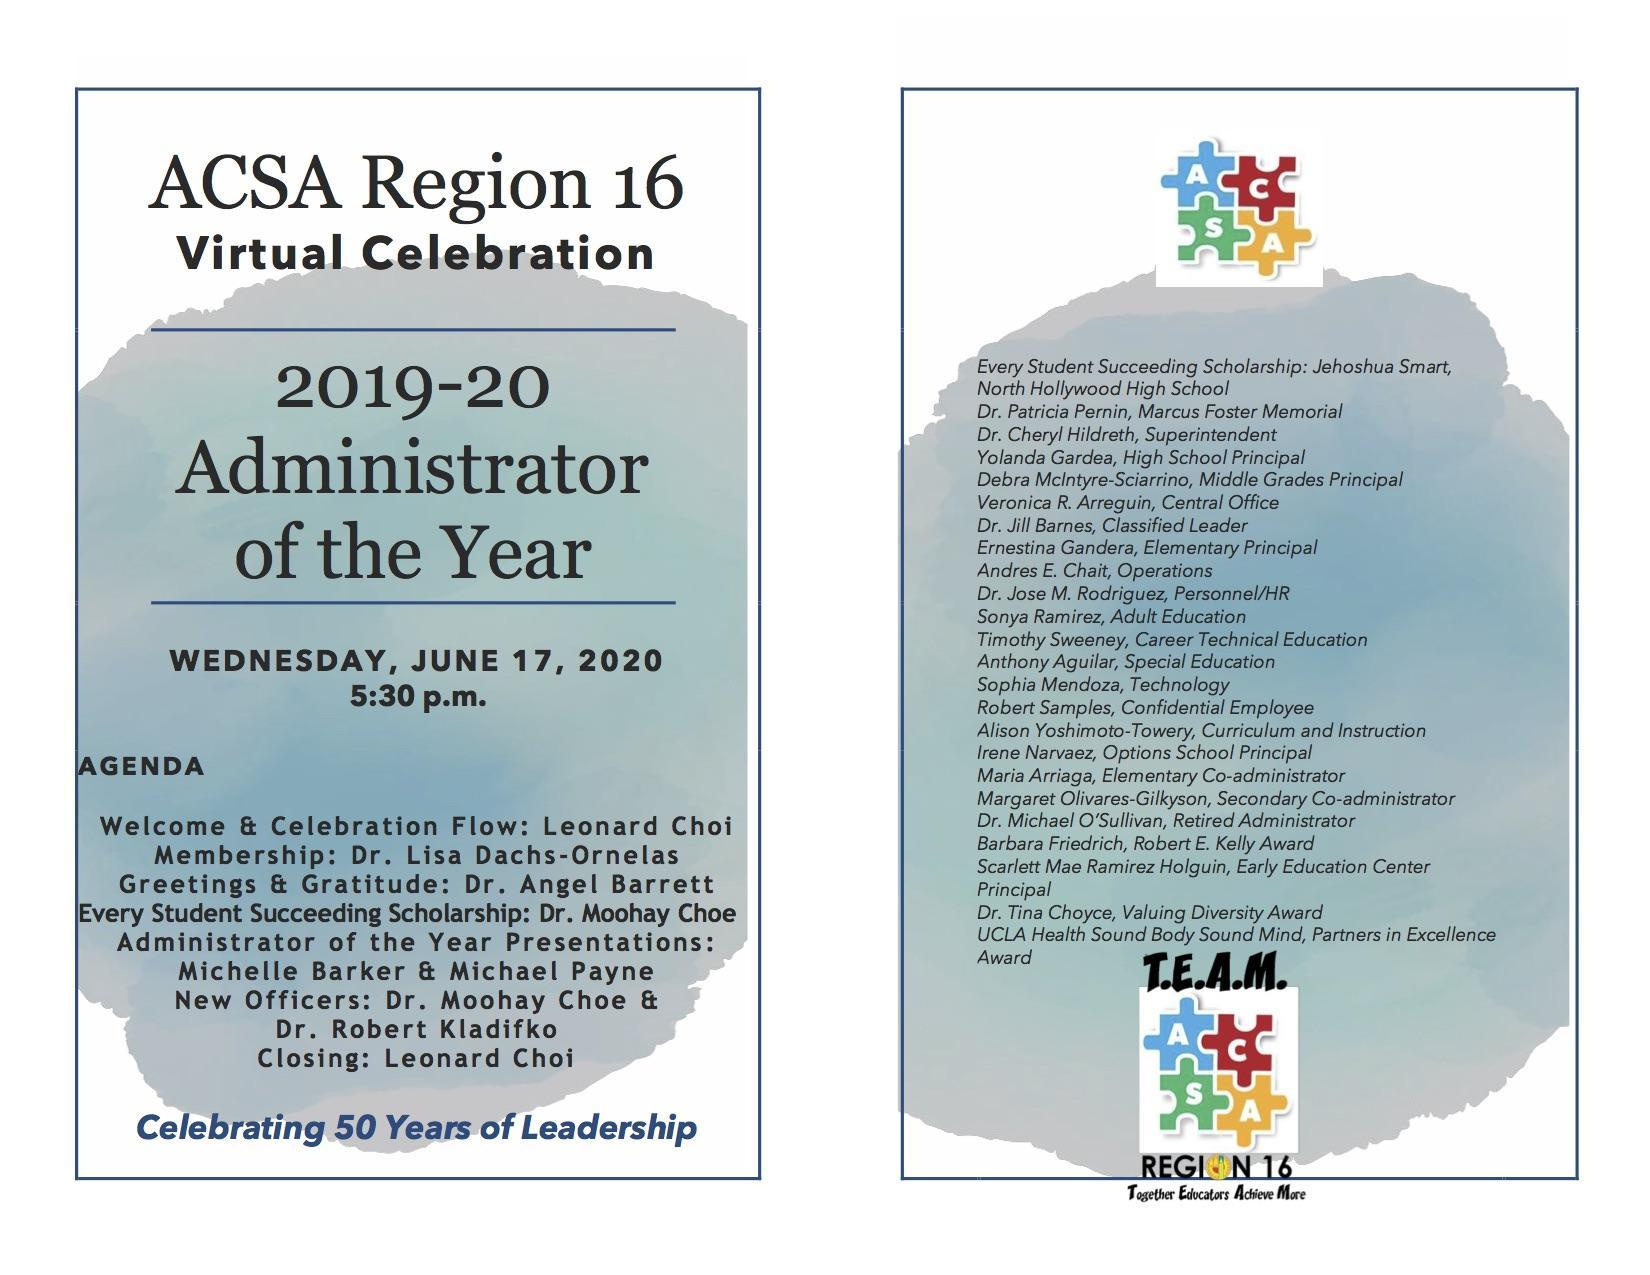 Administrator of the Year Virtual Celebration - Wednesday, June 17th @ 5:30 PM Image